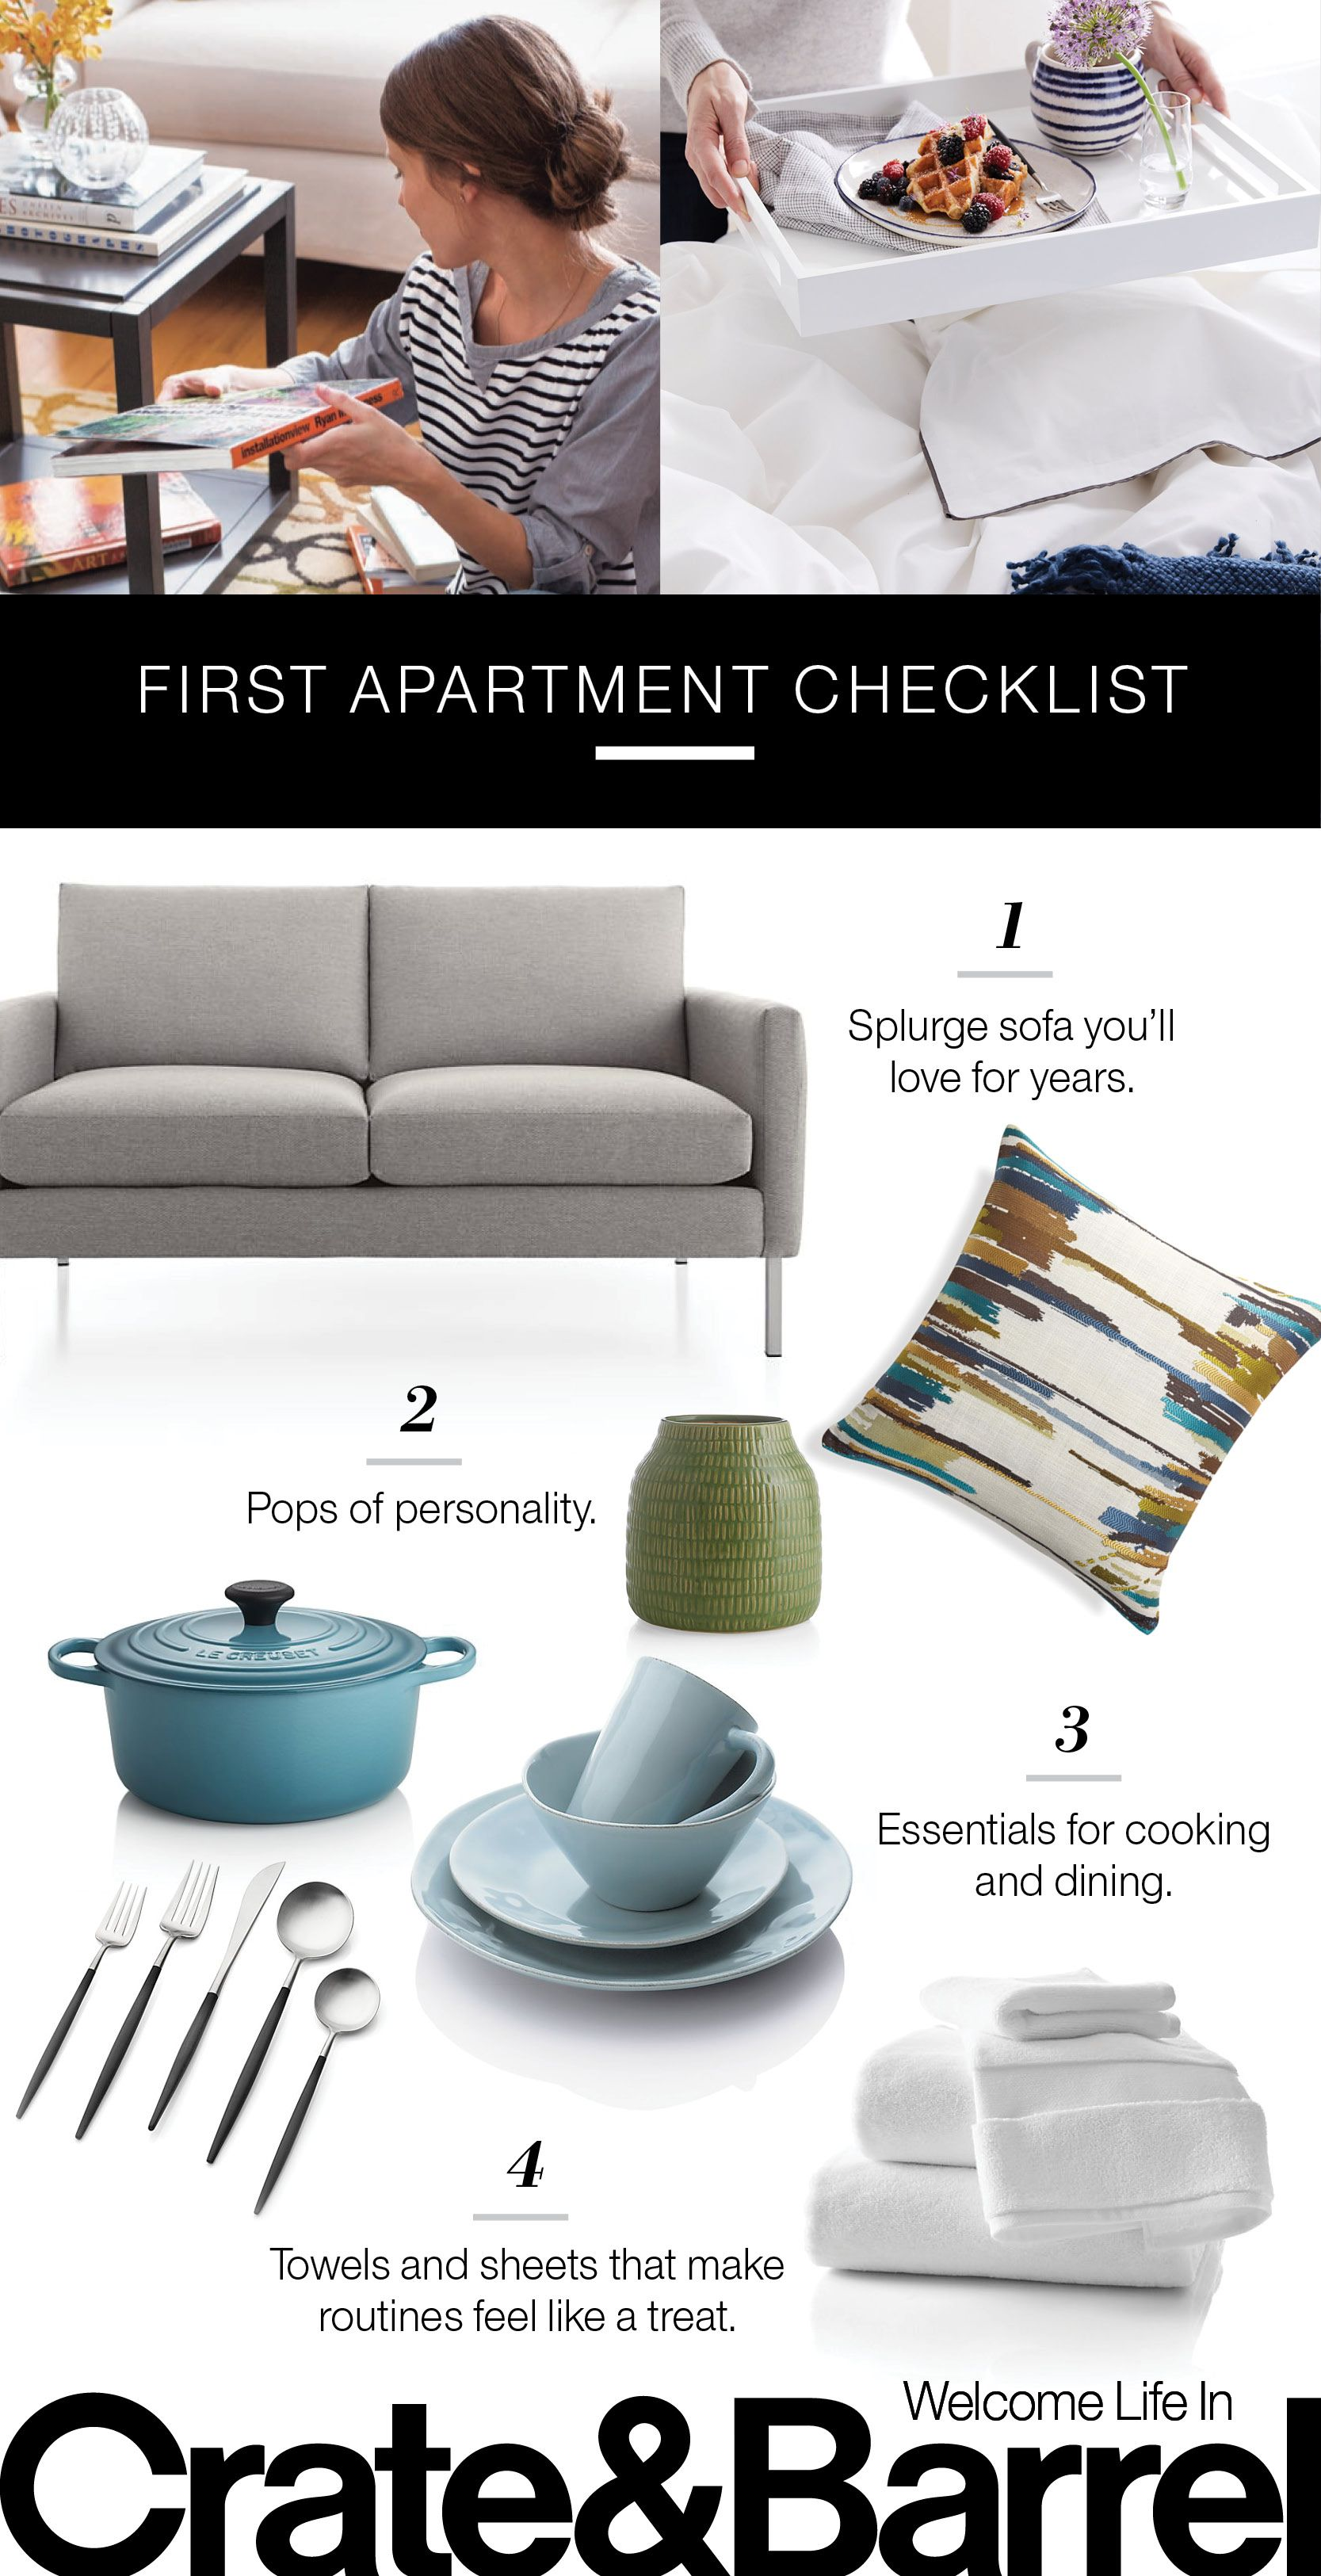 Finally Your Own Place Our Checklist Shows You What Need And How To Have Fun Making First Apartment Uniquely Yours